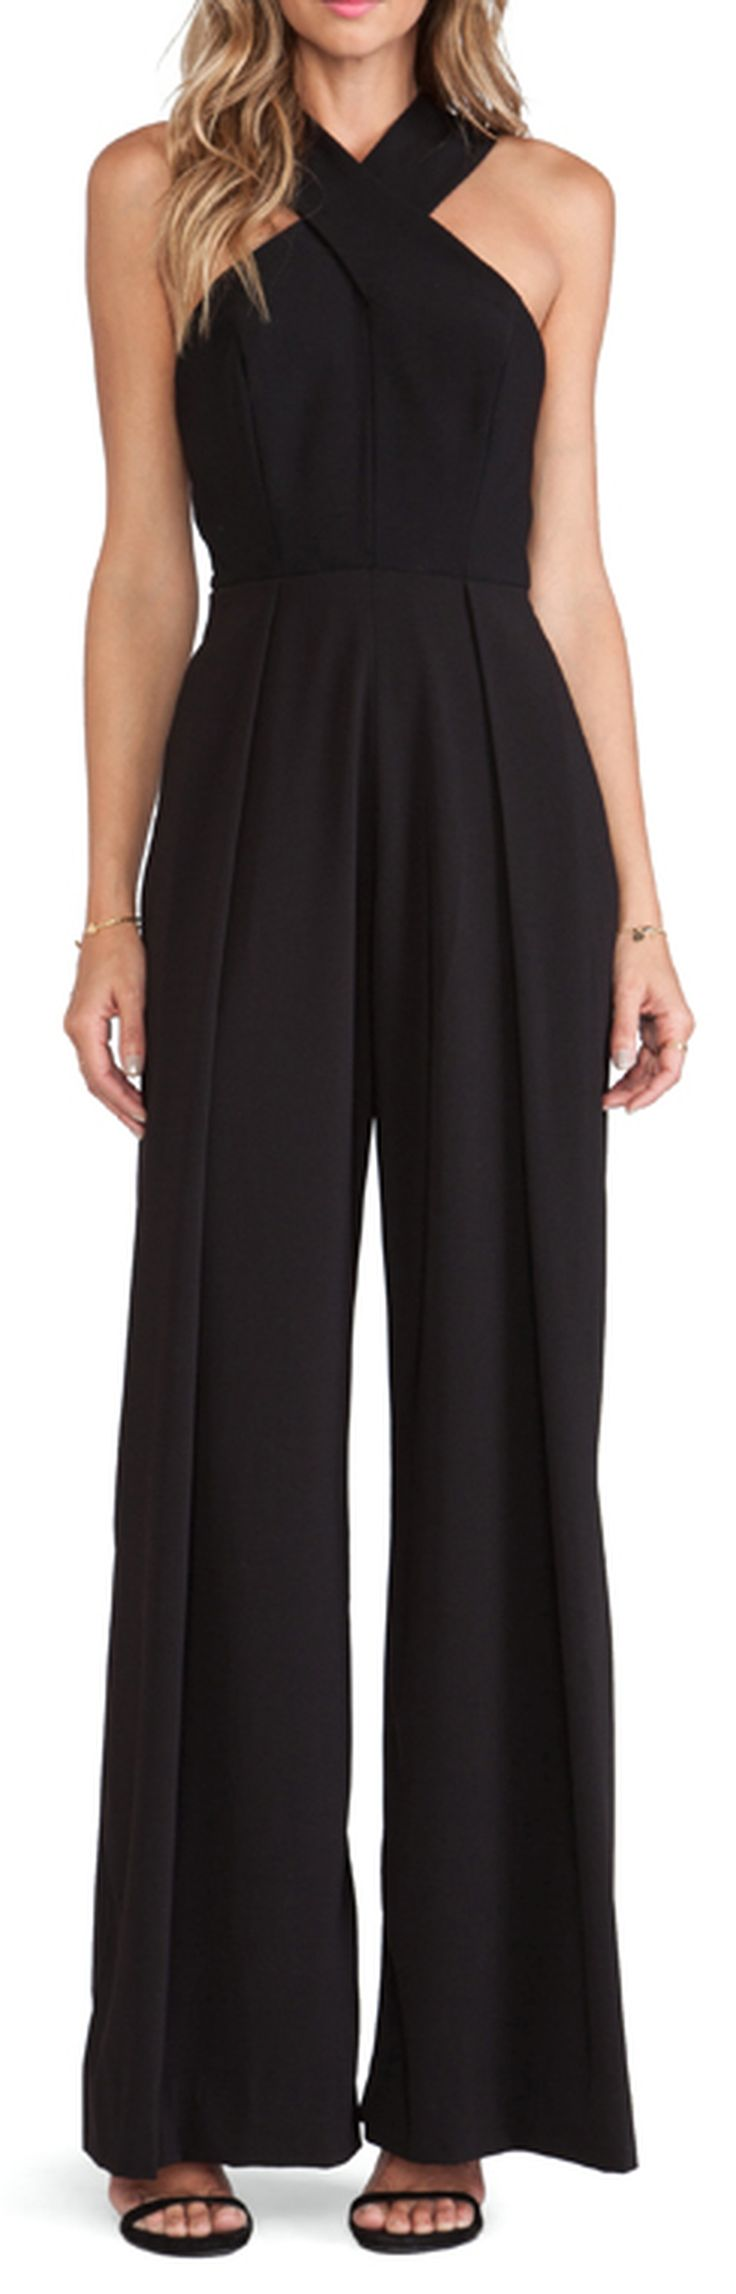 how to wear a black jumpsuit for night out